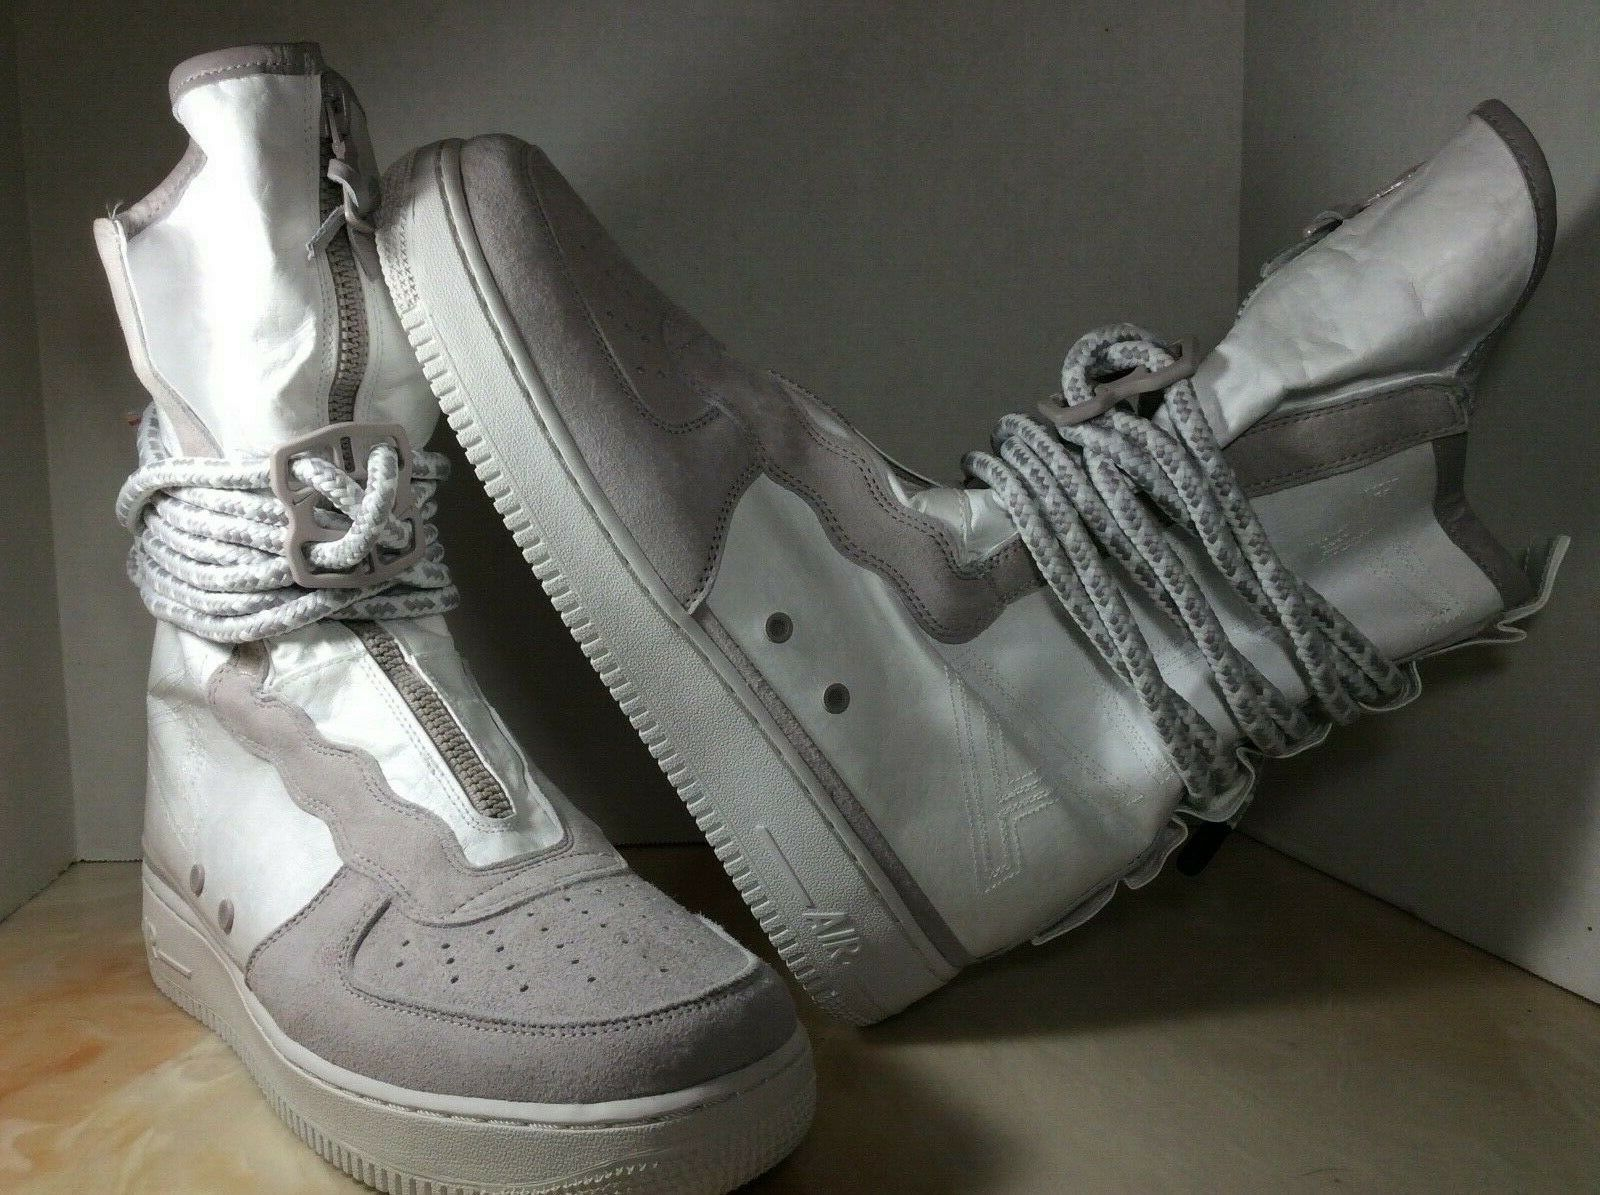 Nike AF1 SF High All Star QS mens size 10.5 white grey AQ0107-001